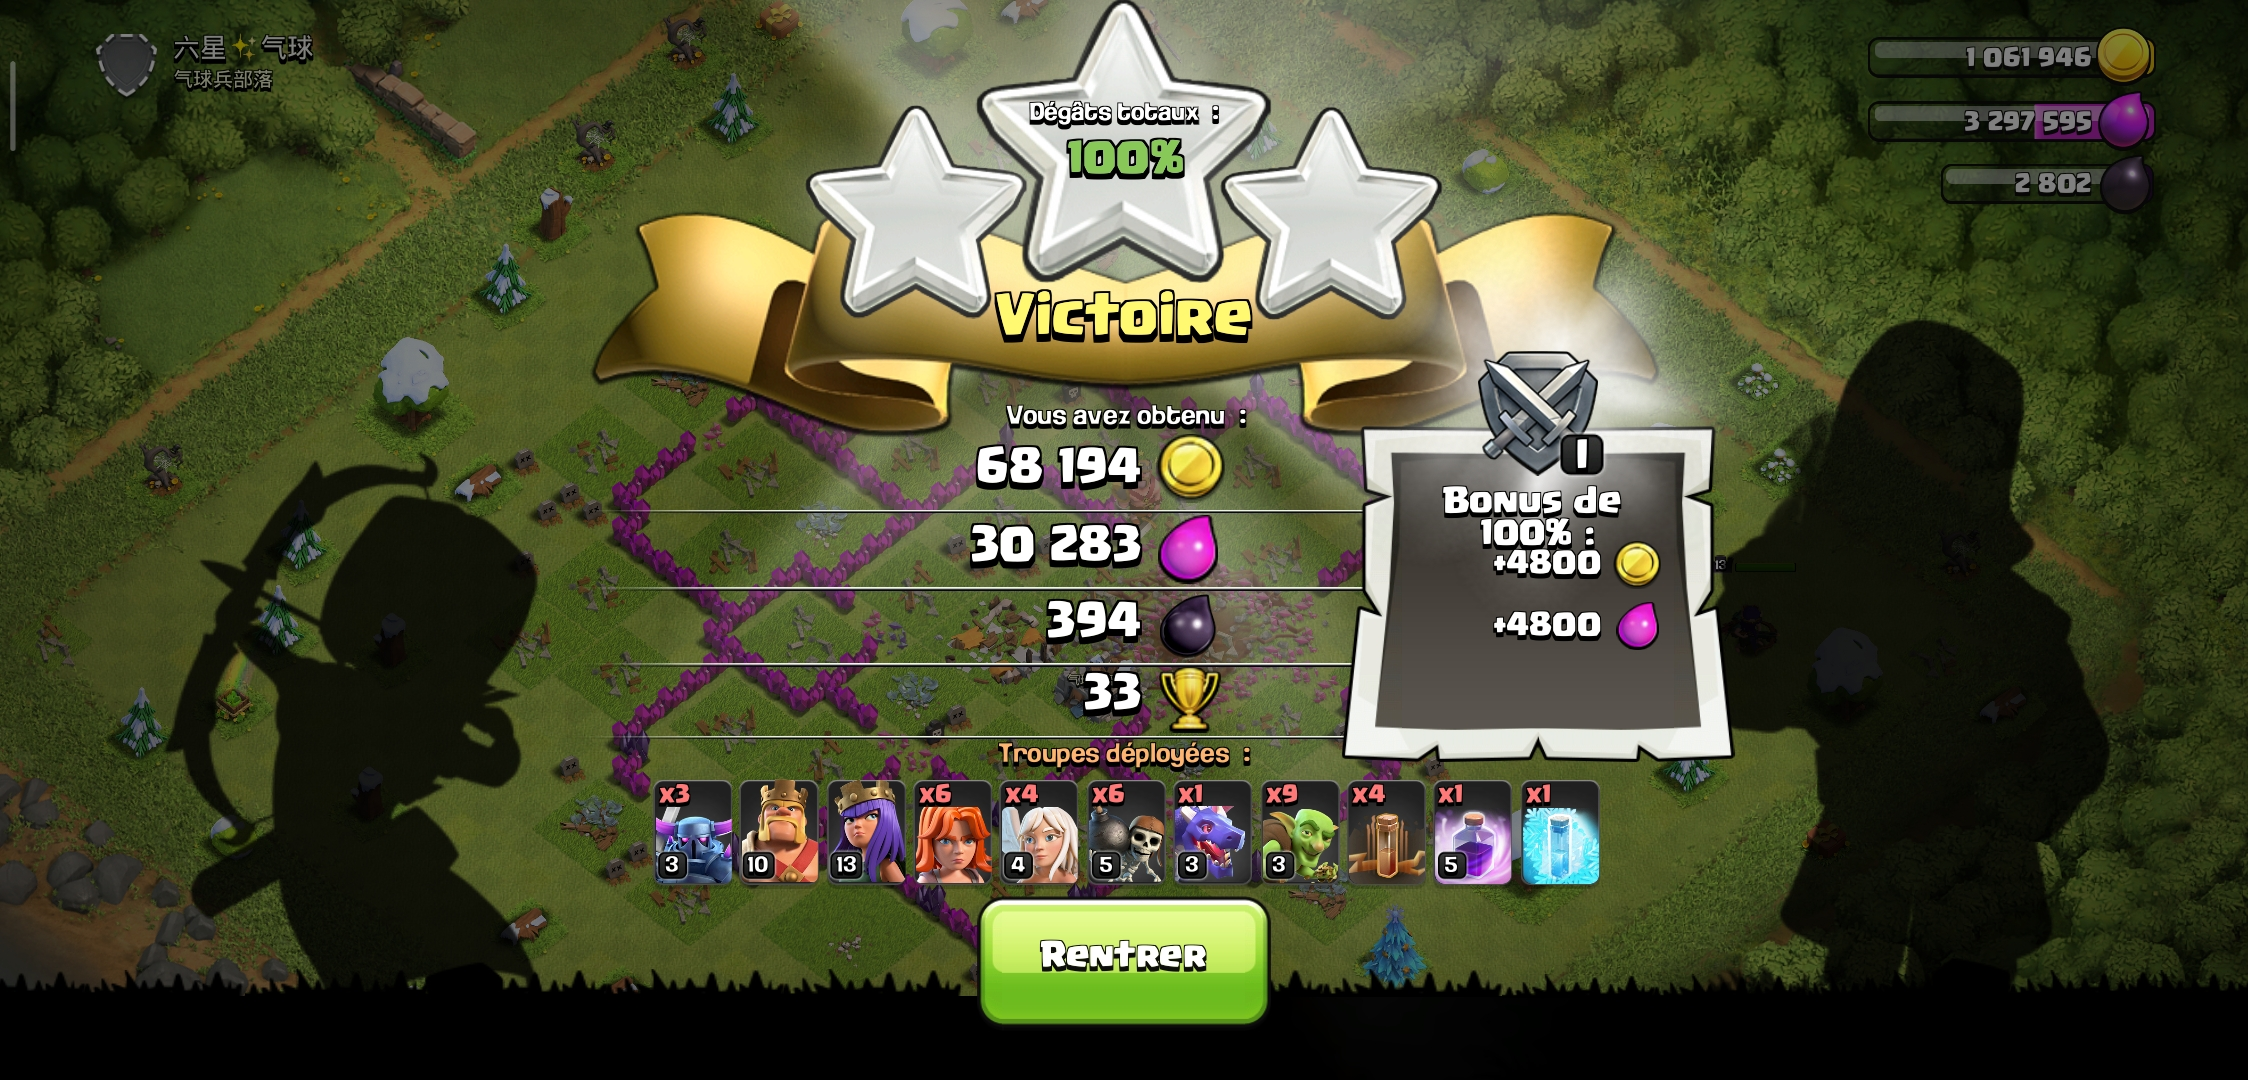 Screenshot_2019-12-18-18-45-37-470_com.supercell.clashofclans.jpg